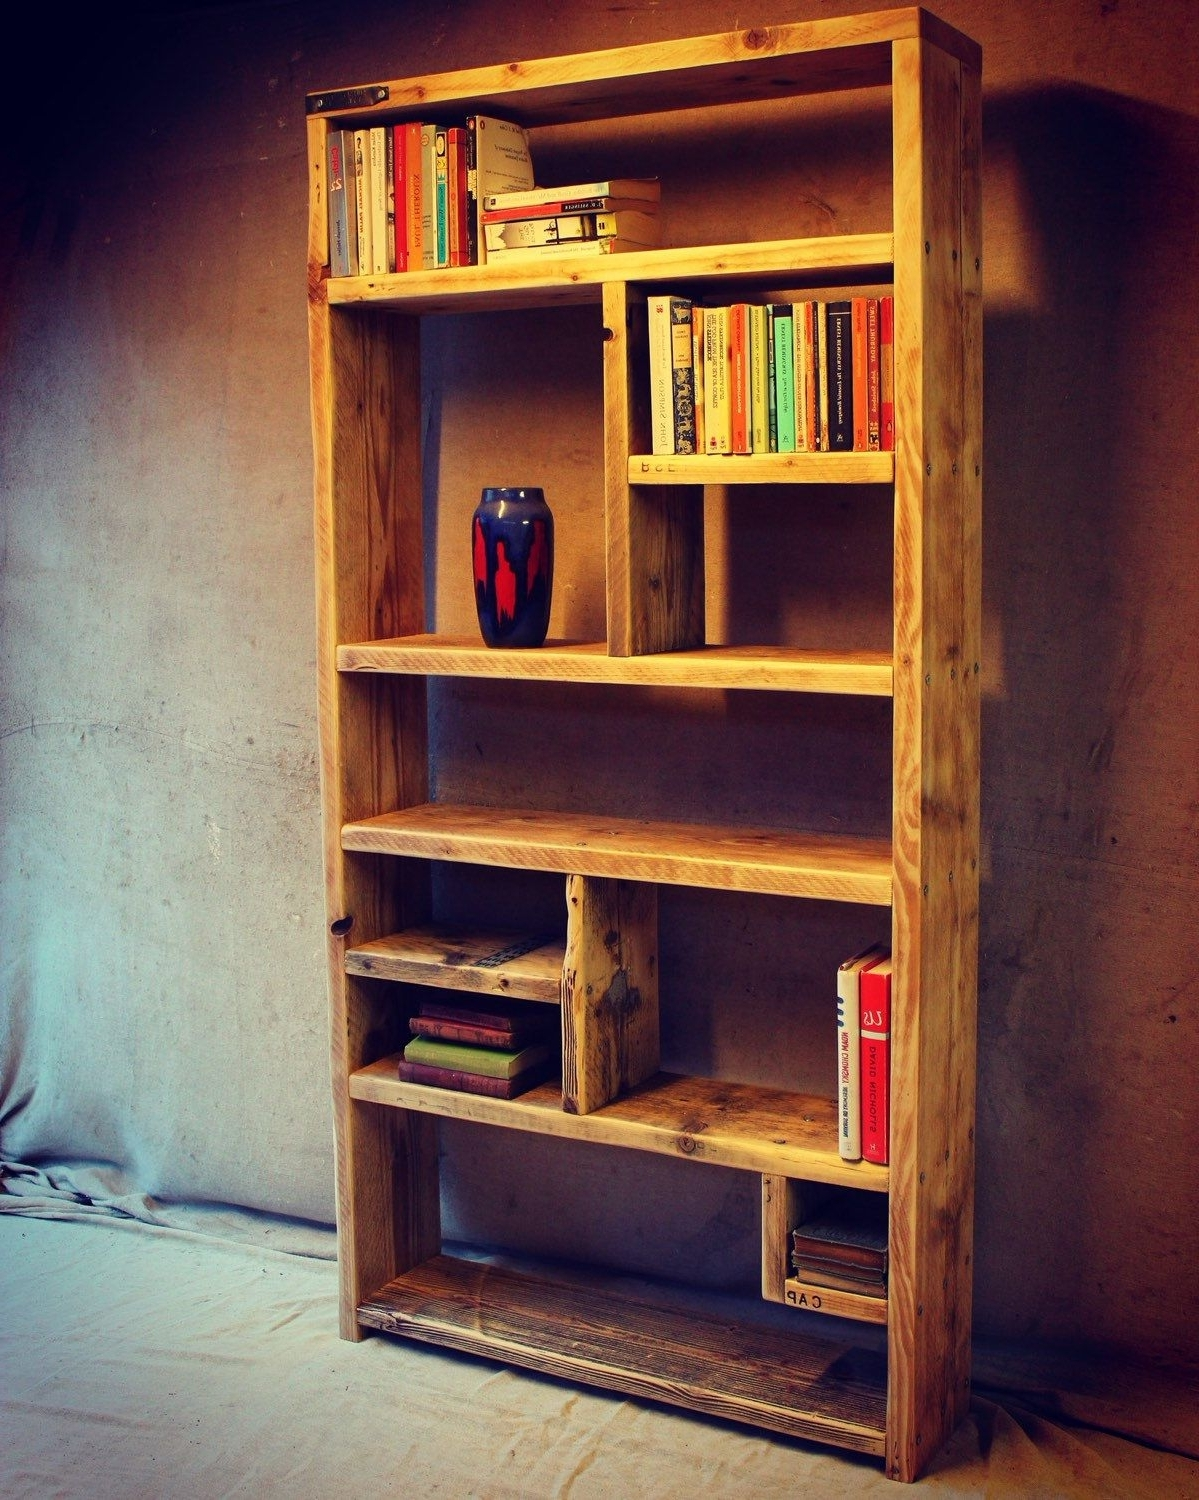 Handmade Bookcases With Regard To Current Reclaimed Wood Bookcases / Ideas And Inspiration – Handmade (View 8 of 15)